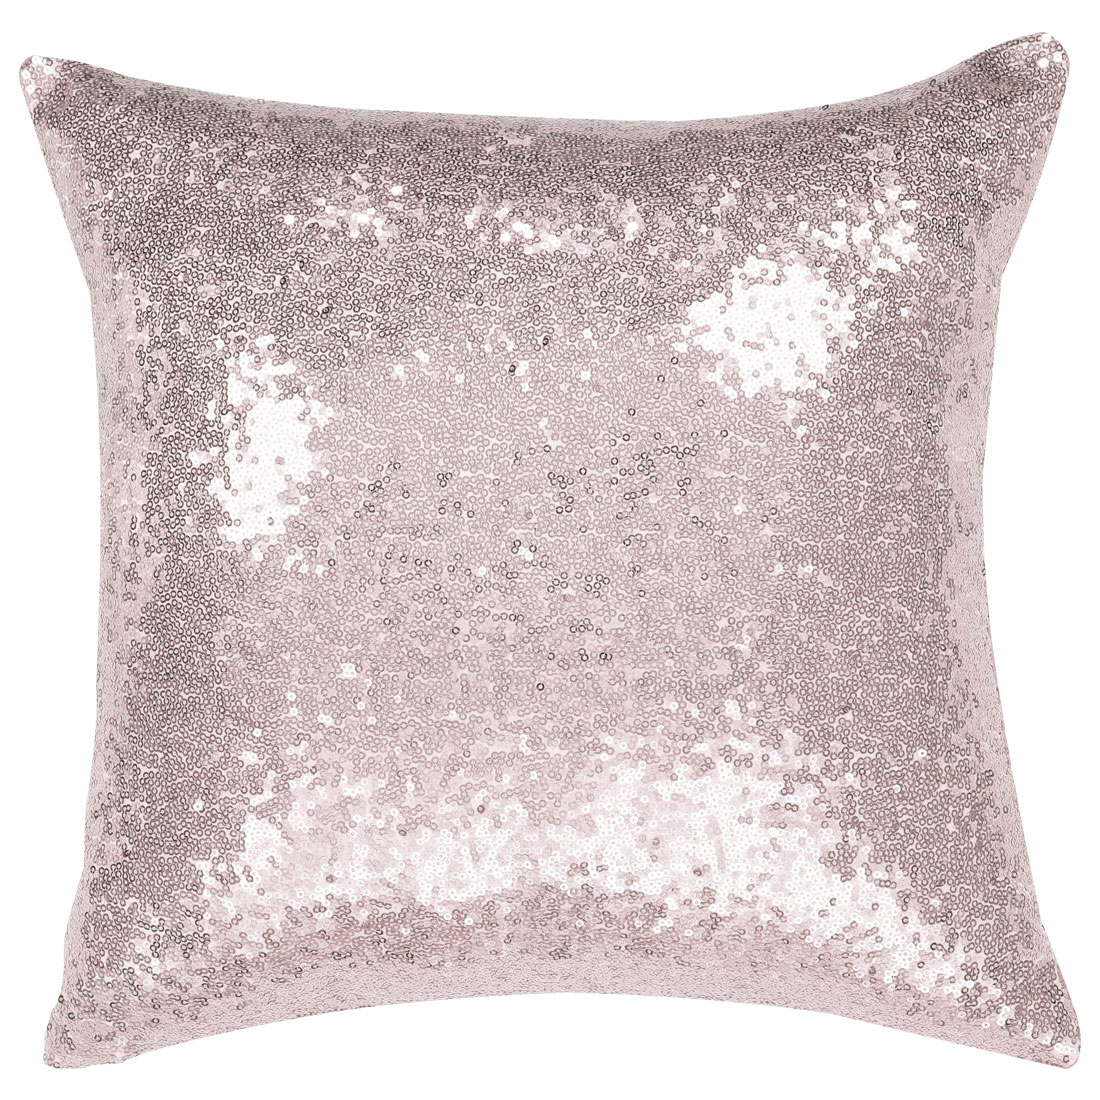 Calibrate Timing 16 x 16 Pillow Insert Hypoallergenic/Square Decorative Throw Pillow Cushion Stuffer Forms Couch Sham/ 16 inches